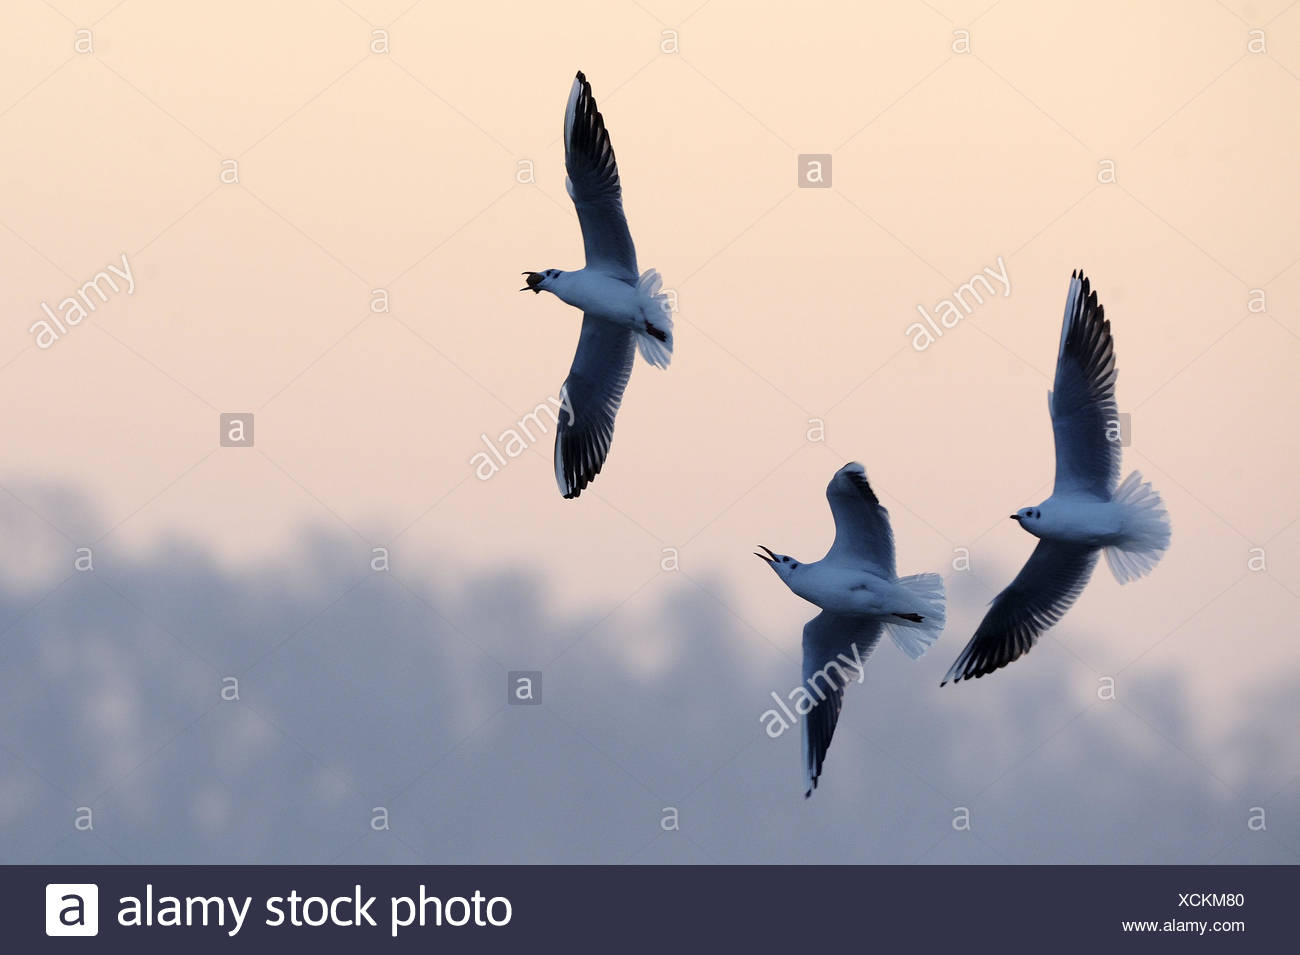 Black-headed gulls, Larus ridibundus, three, fly, hunt, food, nature, animals, birds, gulls, wings, stretched out, flapping of wings, flight, blur, whole body, envy, jealousy, evening light, - Stock Image